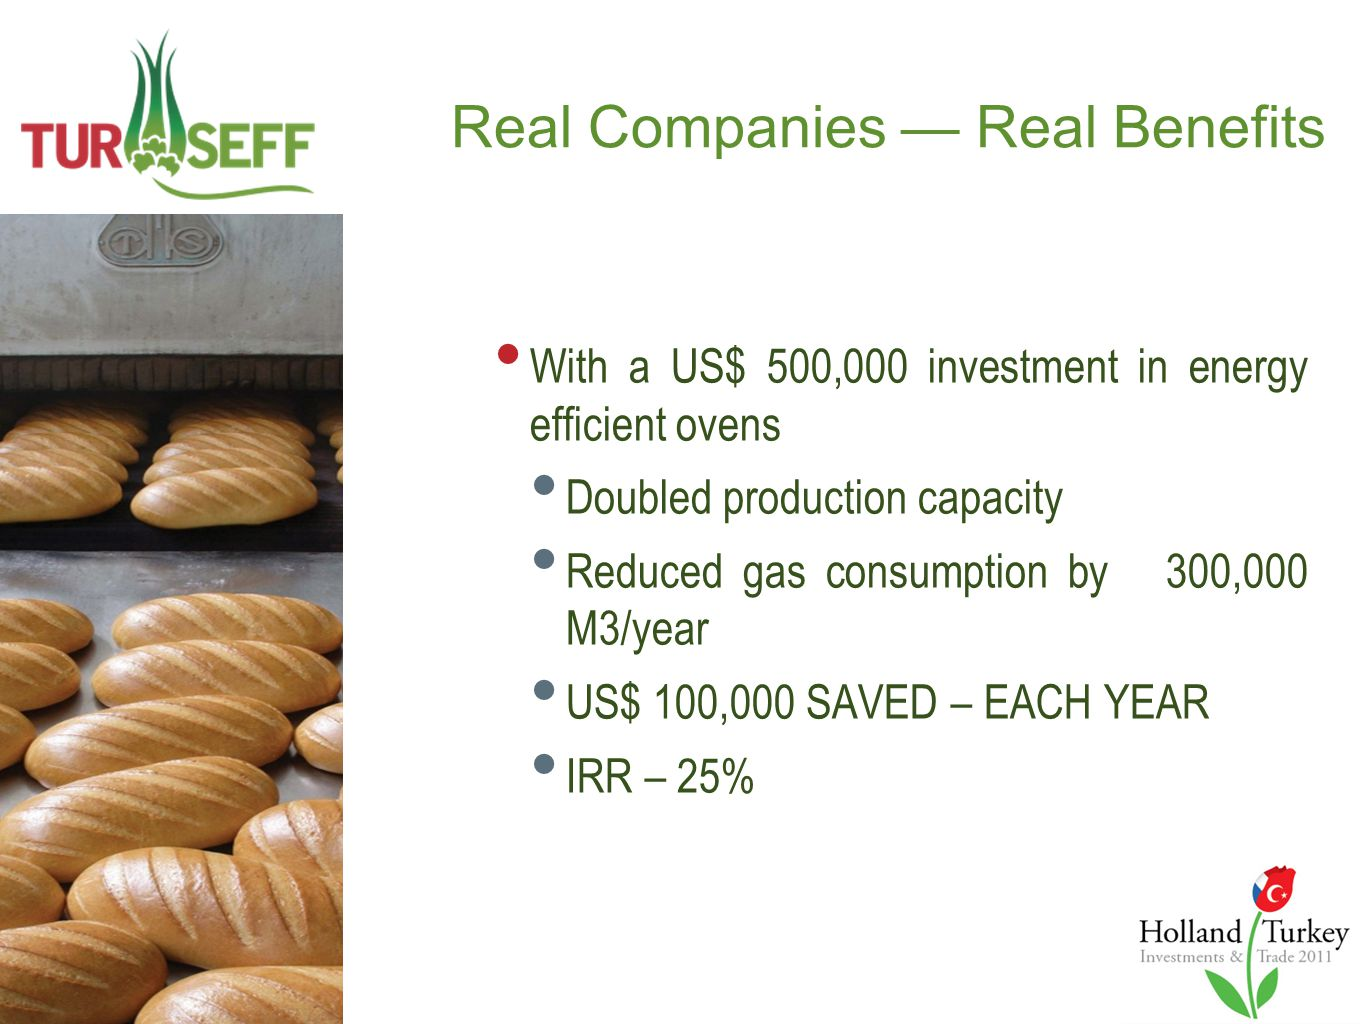 Real Companies — Real Benefits With a US$ 500,000 investment in energy efficient ovens Doubled production capacity Reduced gas consumption by 300,000 M3/year US$ 100,000 SAVED – EACH YEAR IRR – 25%